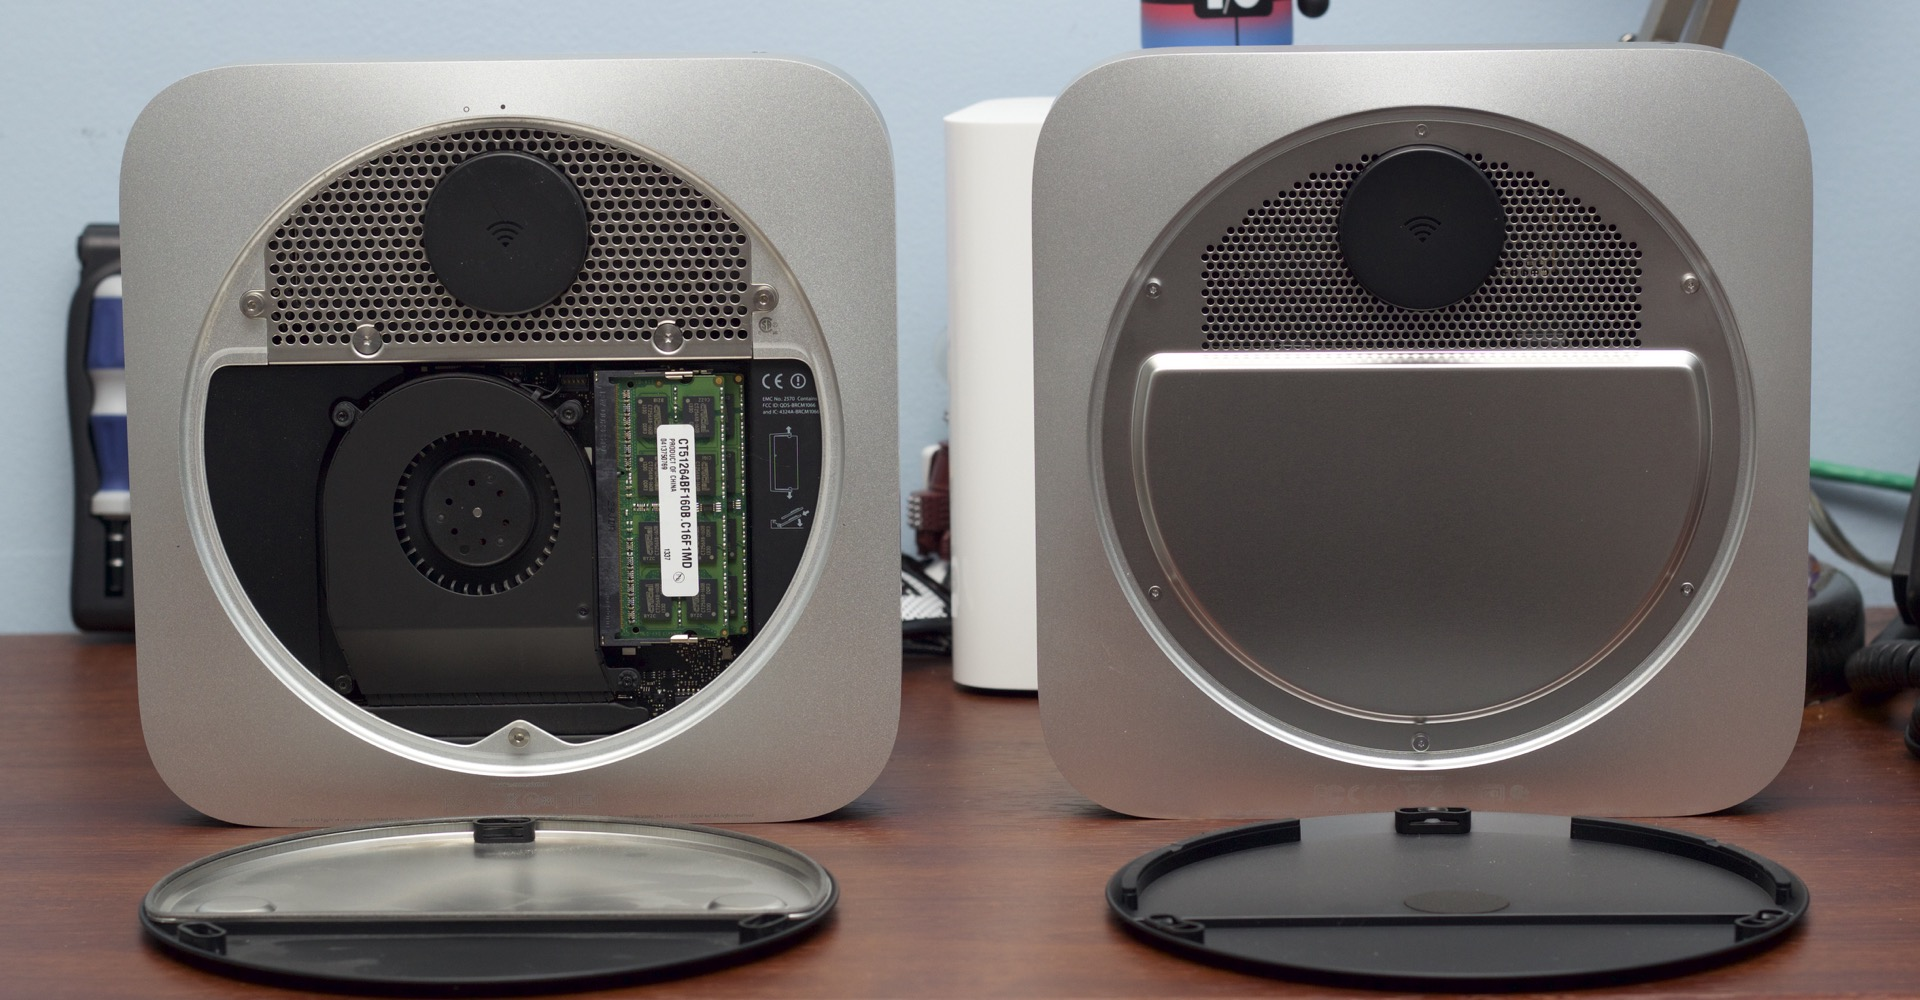 The upgradeable 2012 Mac Mini on the left; the sealed (and most current) 2014 Mac Mini on the right. Desktops don't need to be this way.